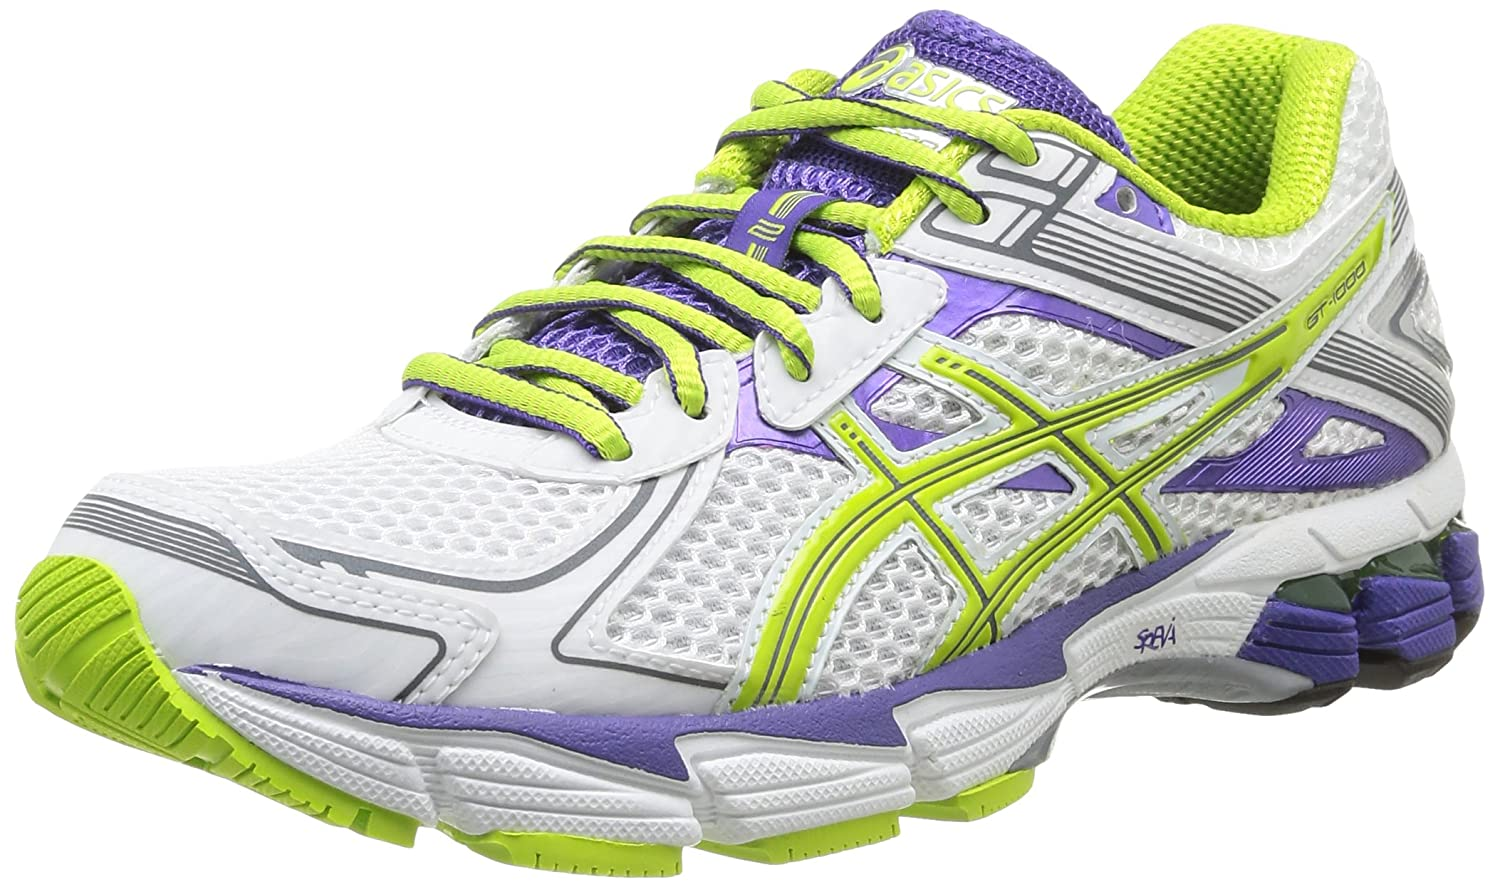 Asics Gt-1000 2 - Zapatillas de running para mujer, color blanco (white/lime/purple), talla 36: Amazon.es: Zapatos y complementos